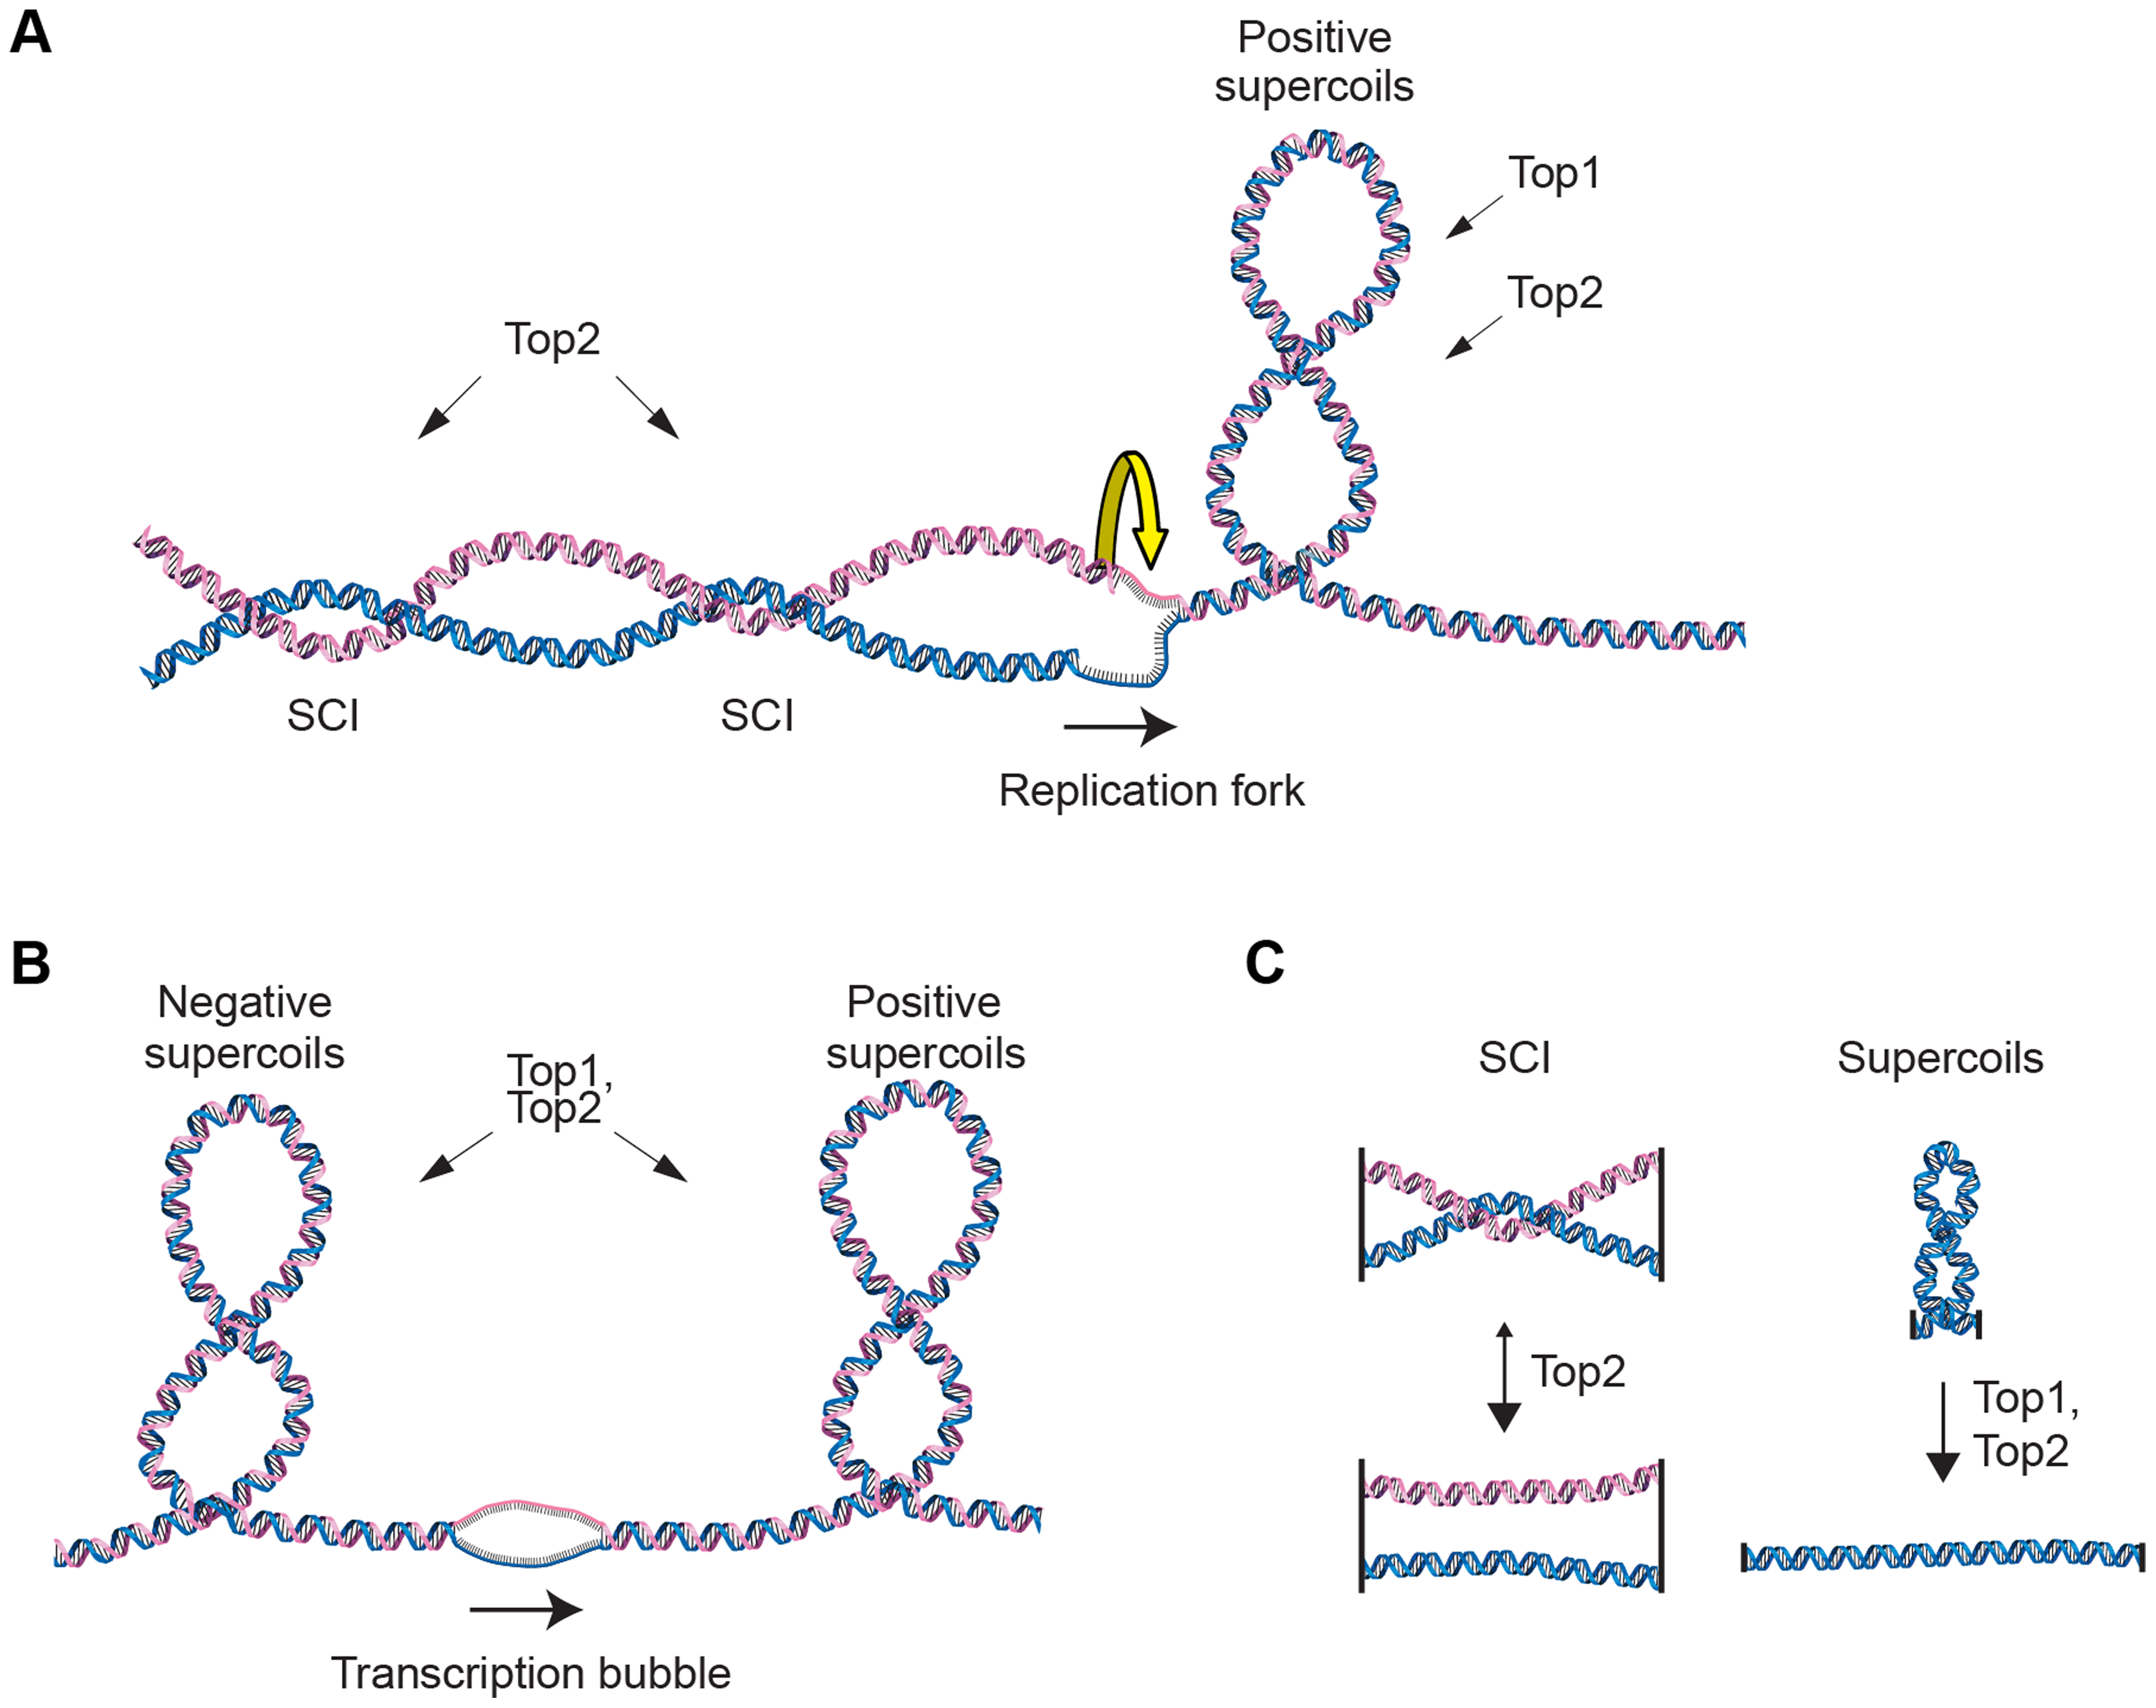 Schematic of DNA supercoiling, SCIs and topoisomerases.